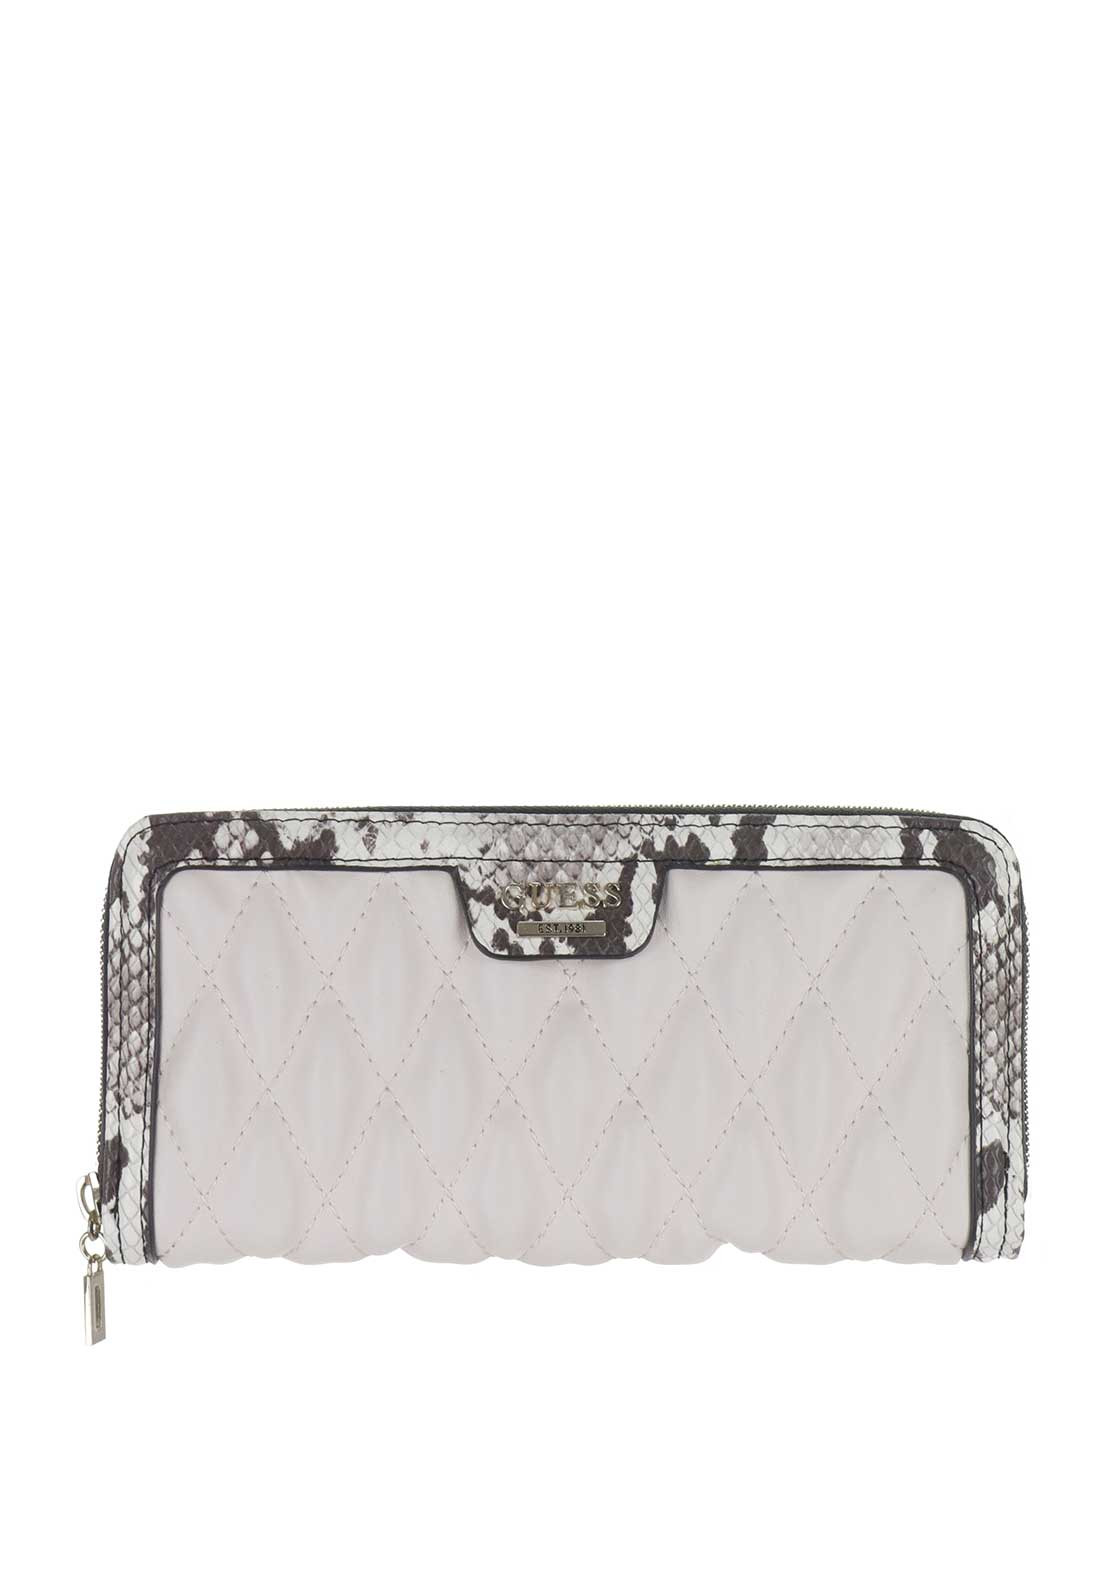 Guess Cate Zip Around Wristlet Purse, White Snake Print